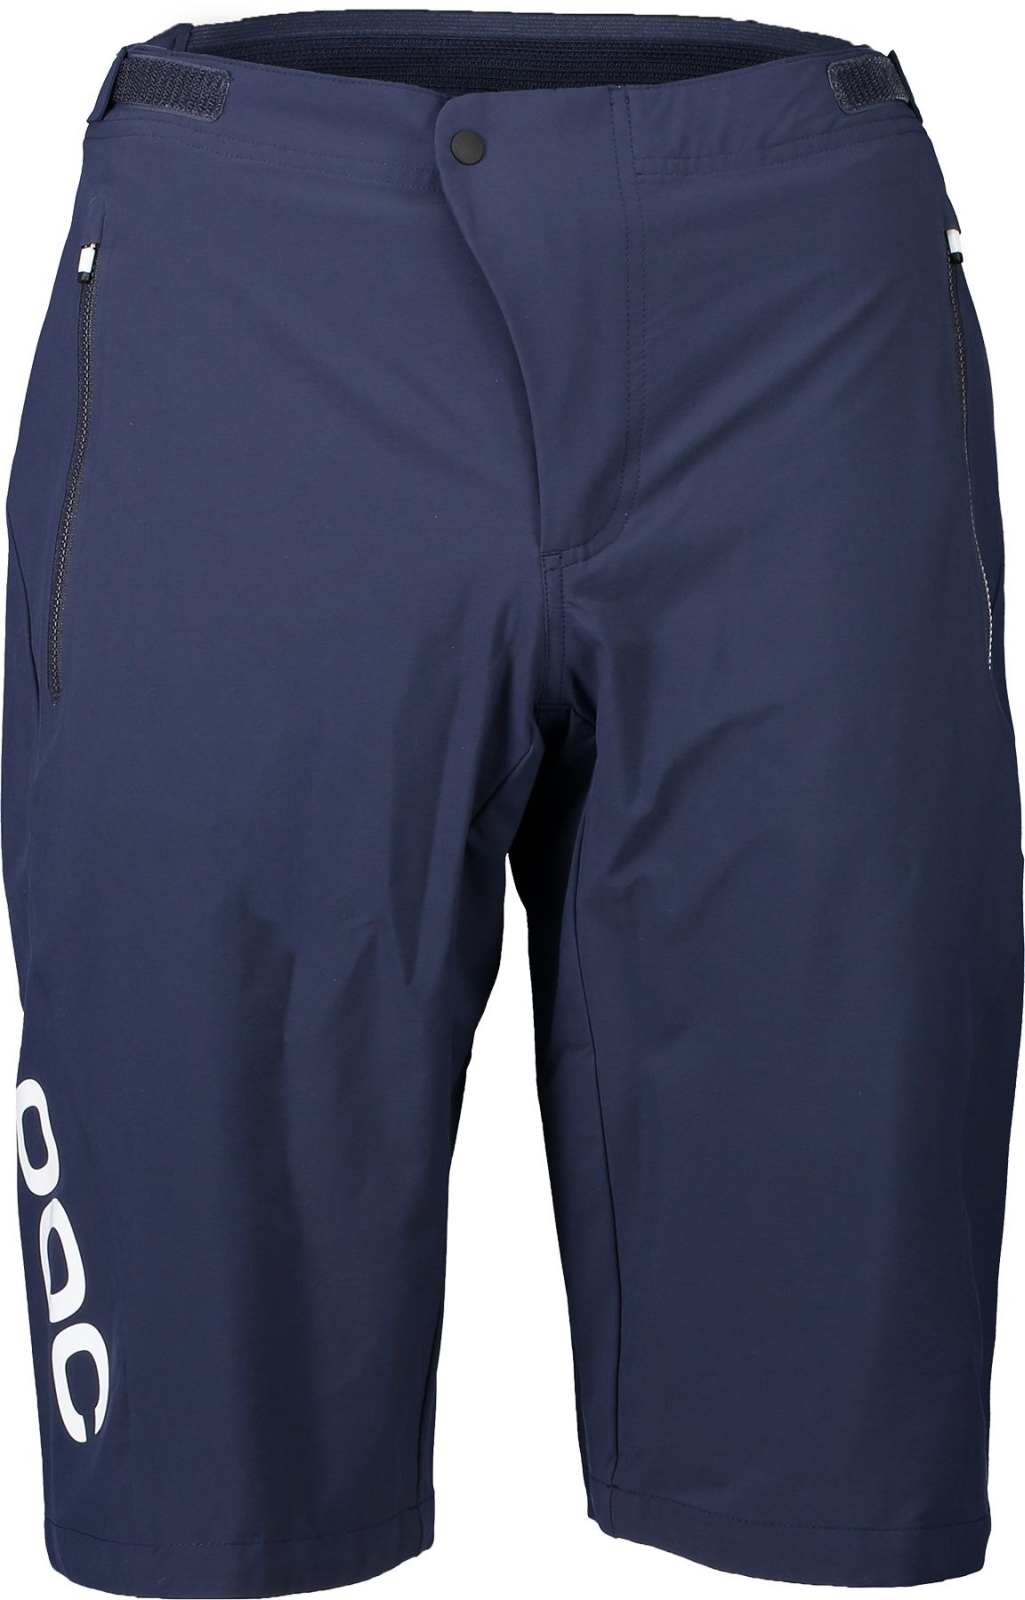 POC Essential Enduro Shorts - Turmaline Navy L